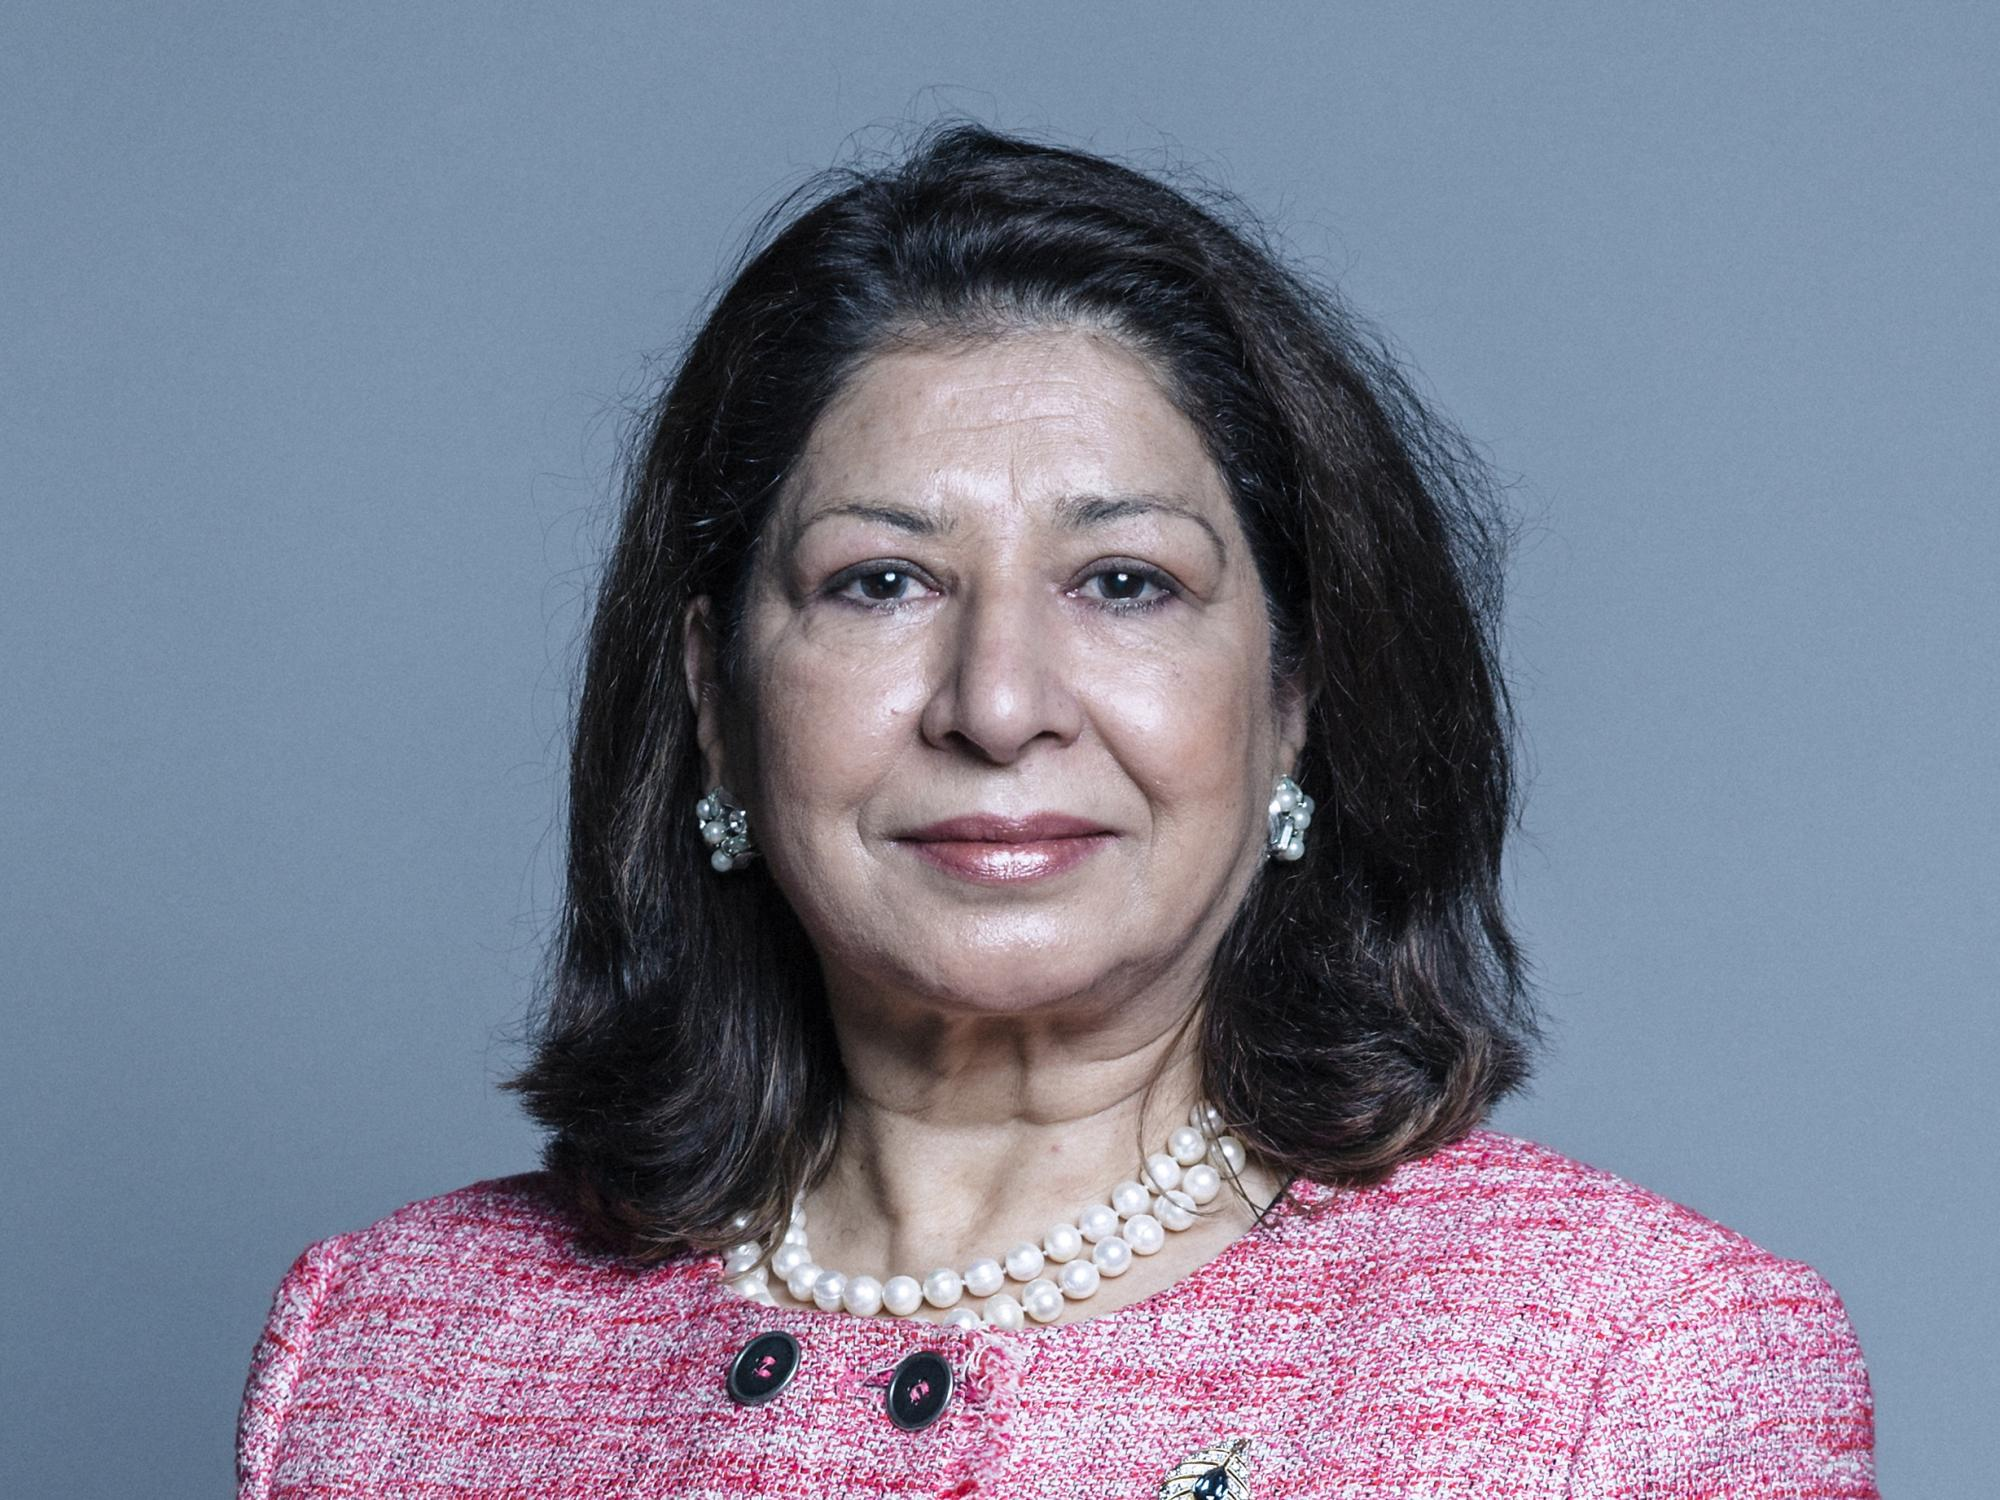 Zahida Parveen Manzoor, Baroness Manzoor CBE (born 25 May 1958) is an English businessperson and public appointee